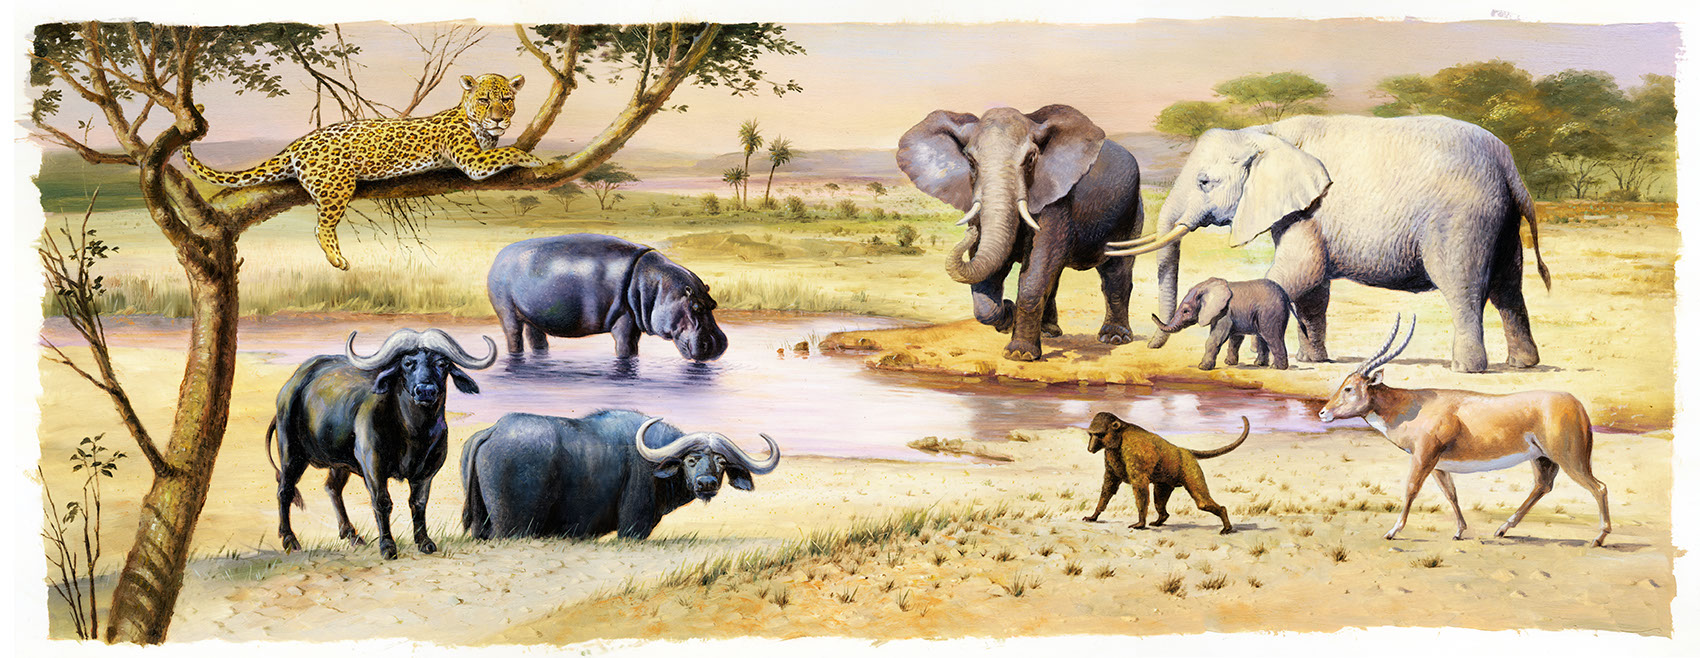 illustration-Animals and Nature_African nature scene-Mike Jaroszko